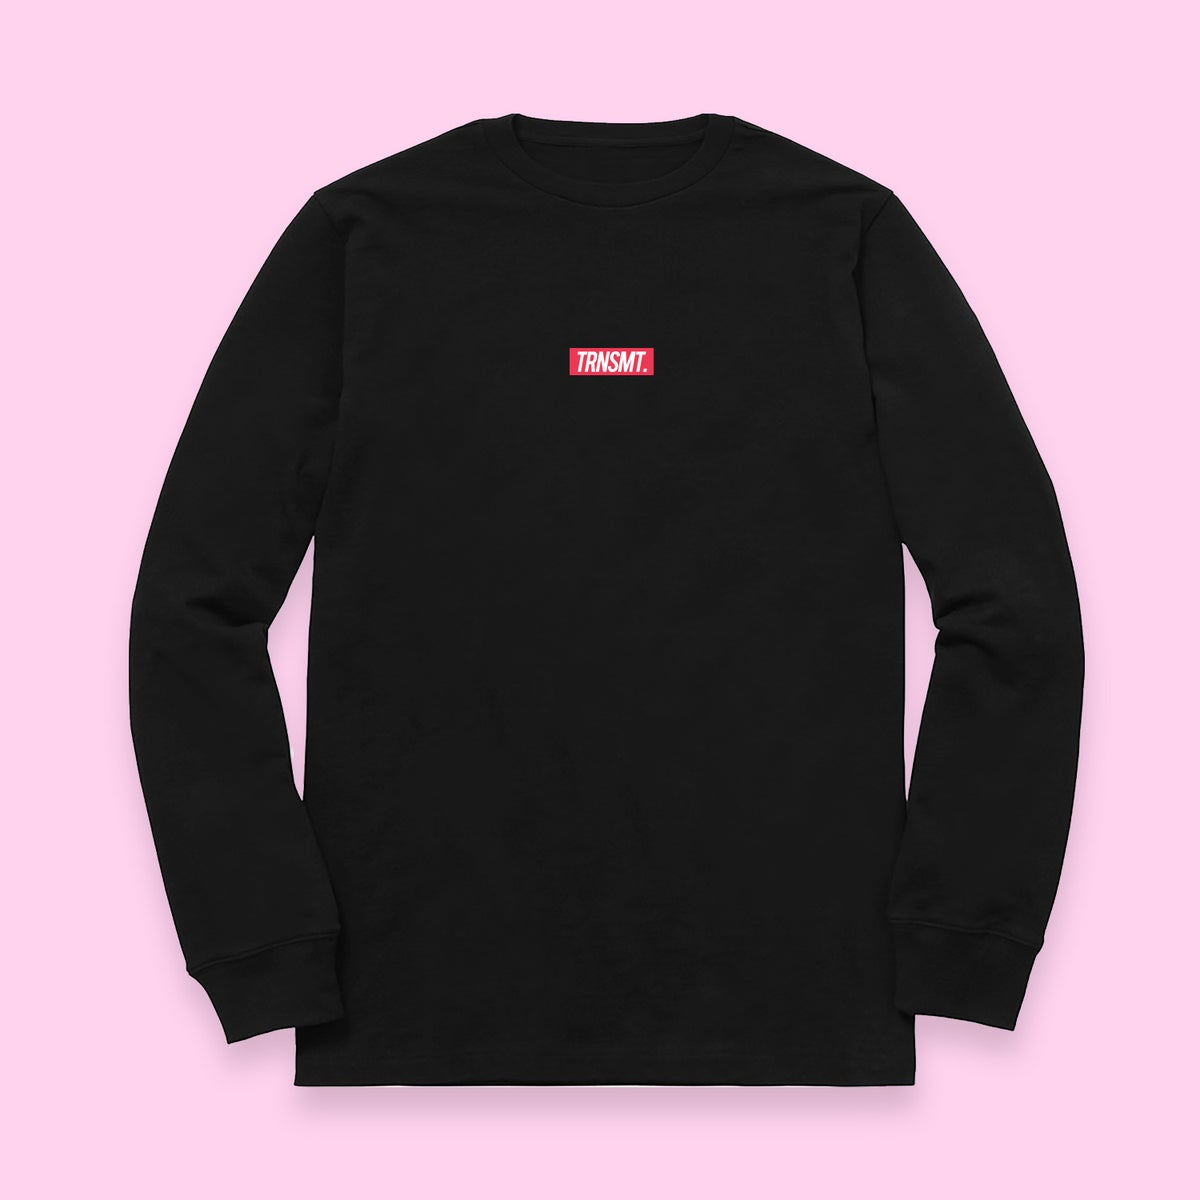 Image of Hill Longsleeve Tee - Black